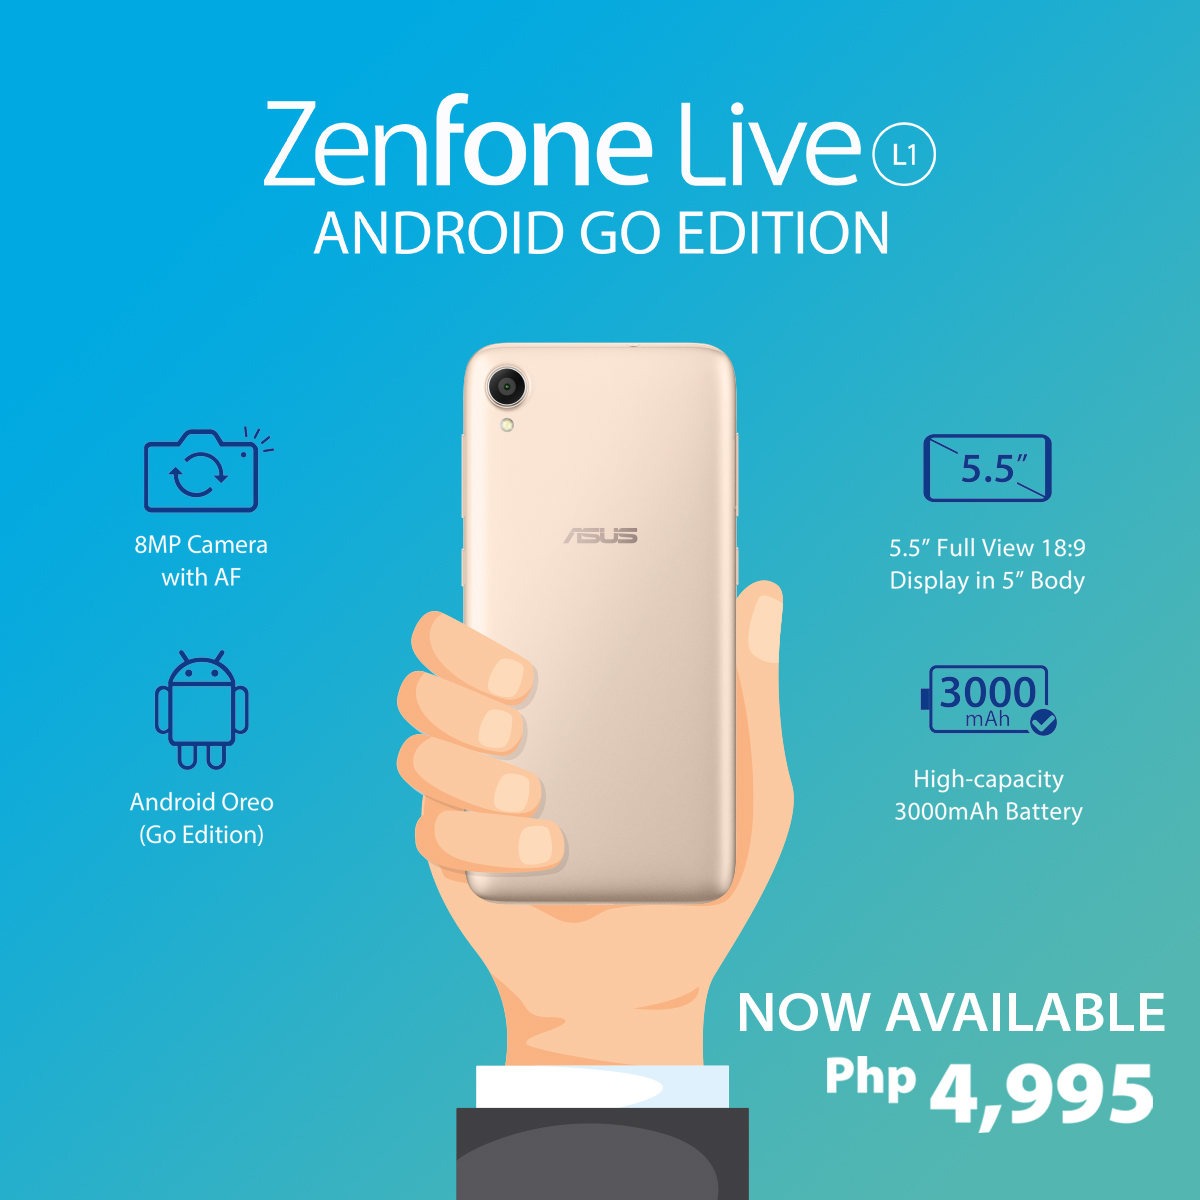 ZenFone Live L1 Android GO Edition